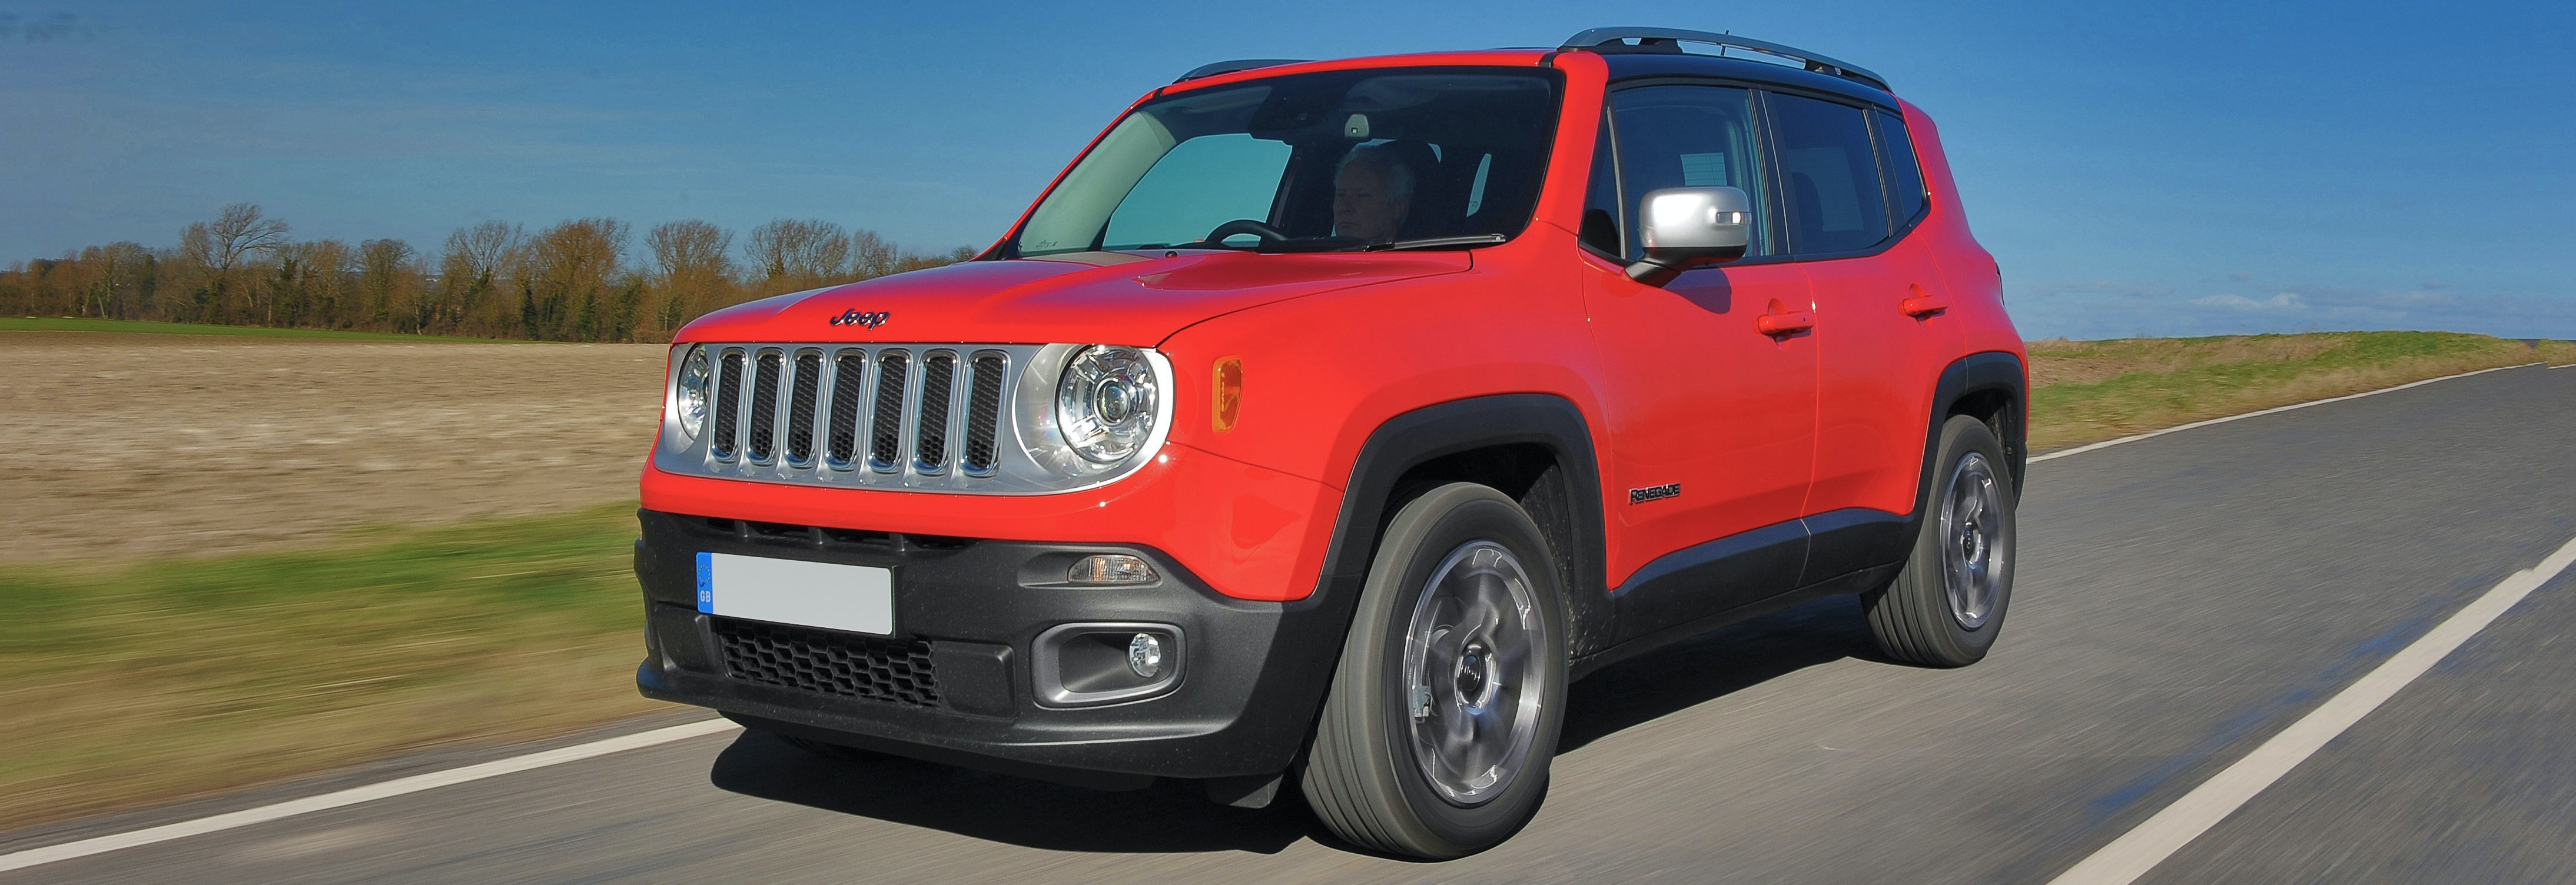 2018 jeep renegade red driving front